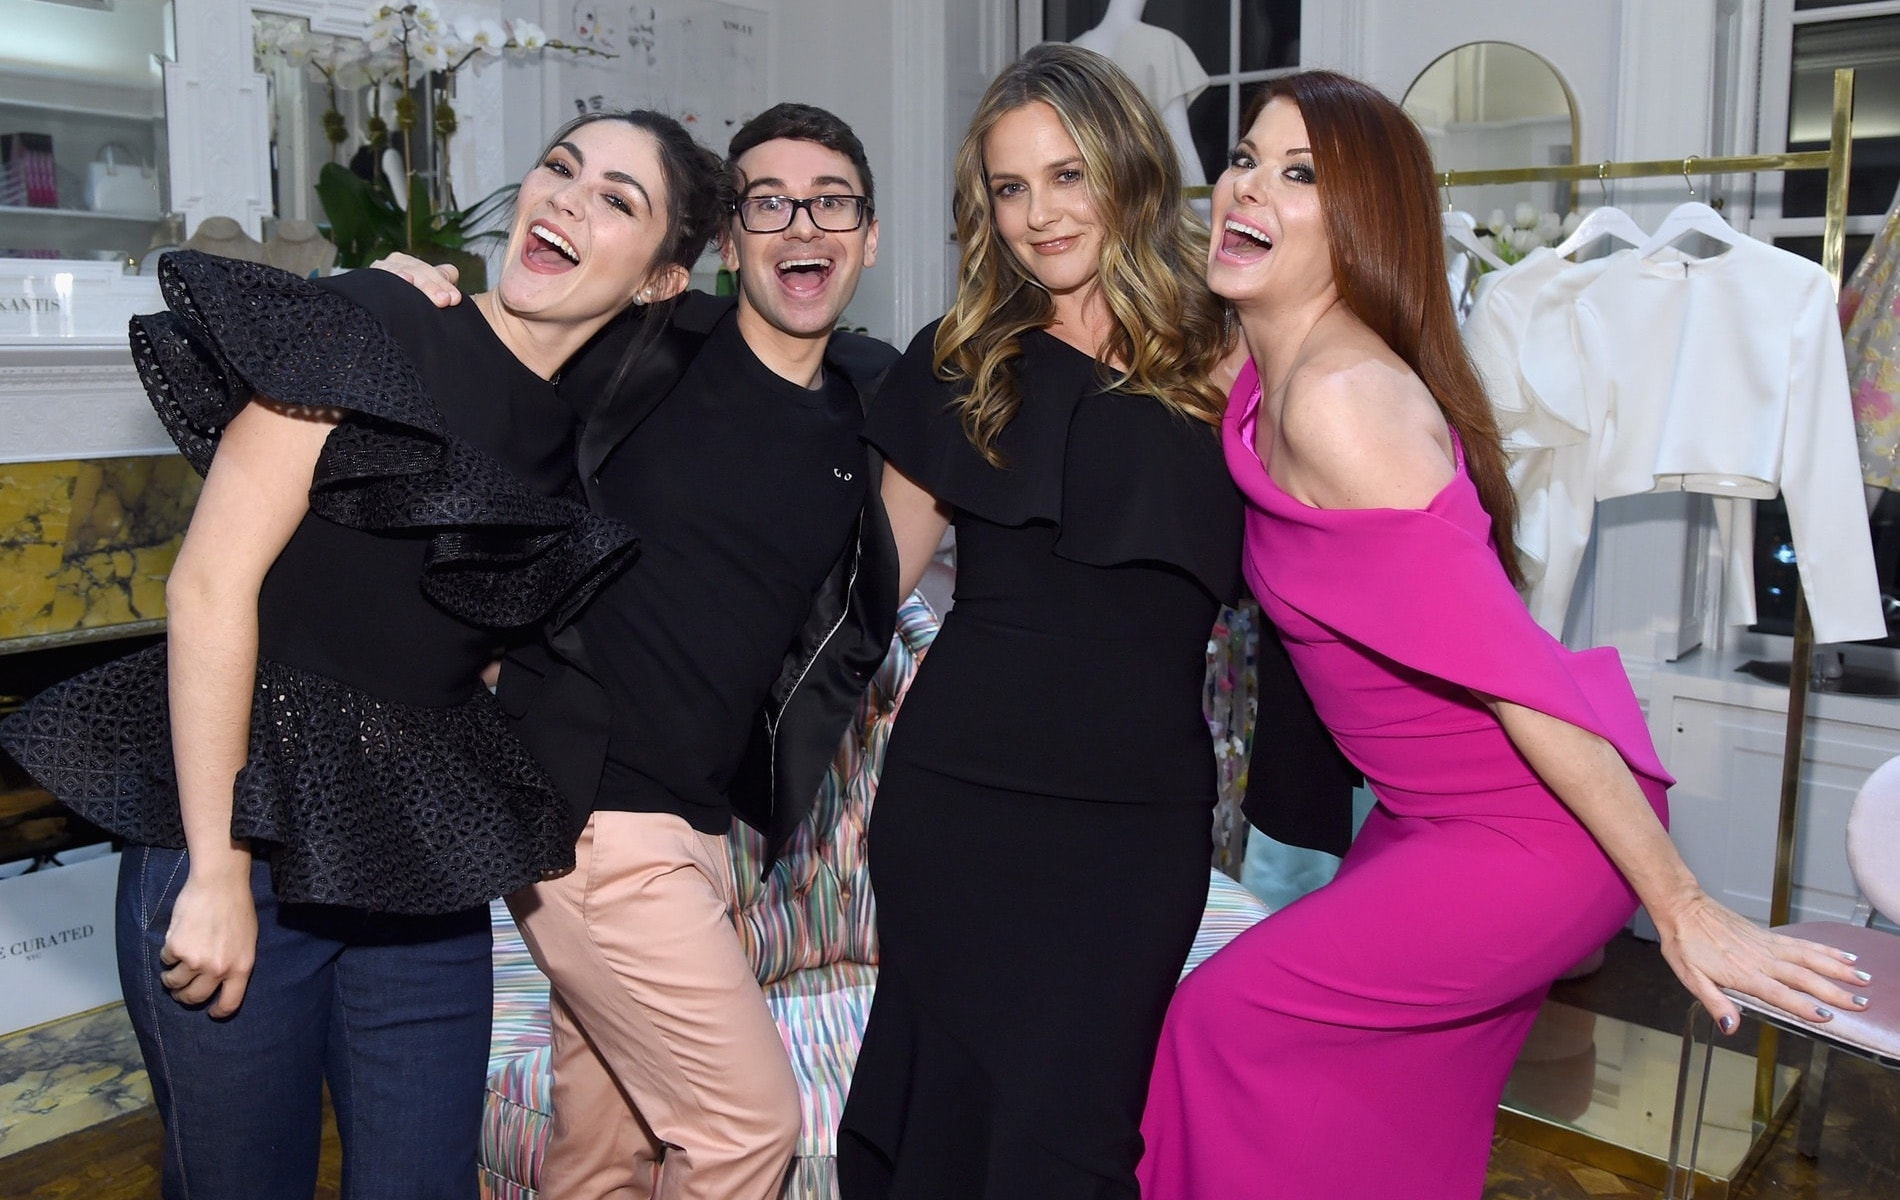 Christian Siriano, The Curated NYC, New York, New York City, Fashion, celebrities, VIE Magazine, Alicia Silverstone, Getty Images, Isabelle Fuhrman, Debra Messing